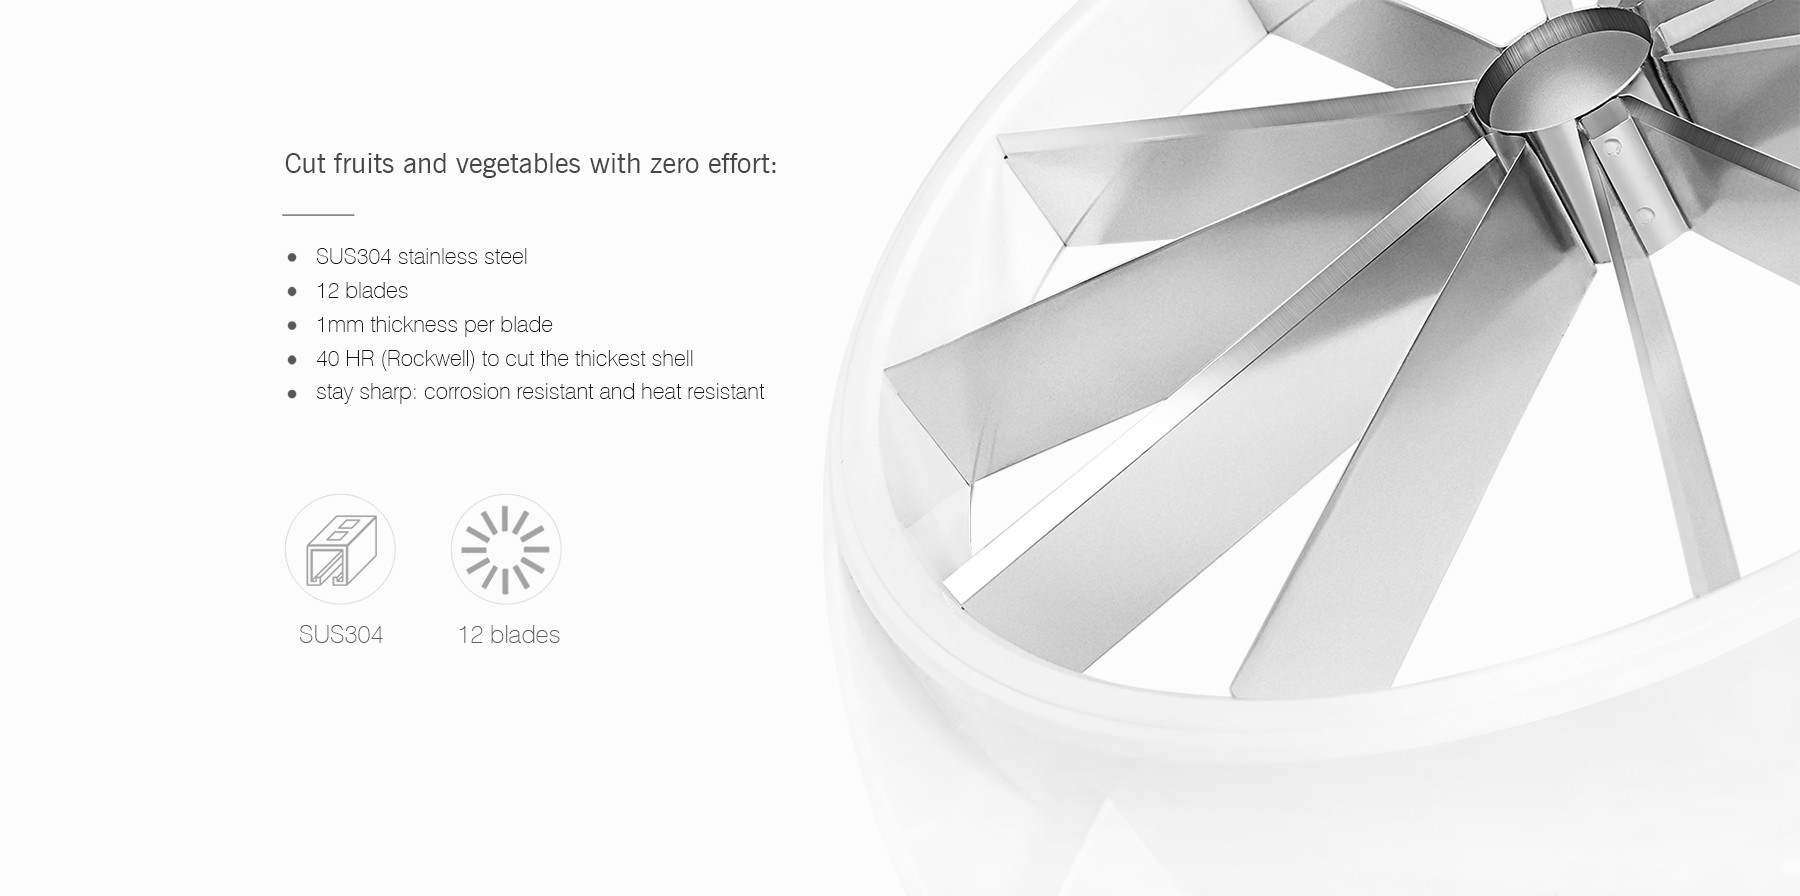 zanmini Stainless Steel Melon Slicer Modern Home Kitchen Tool for Cutting Fruit Vegetables